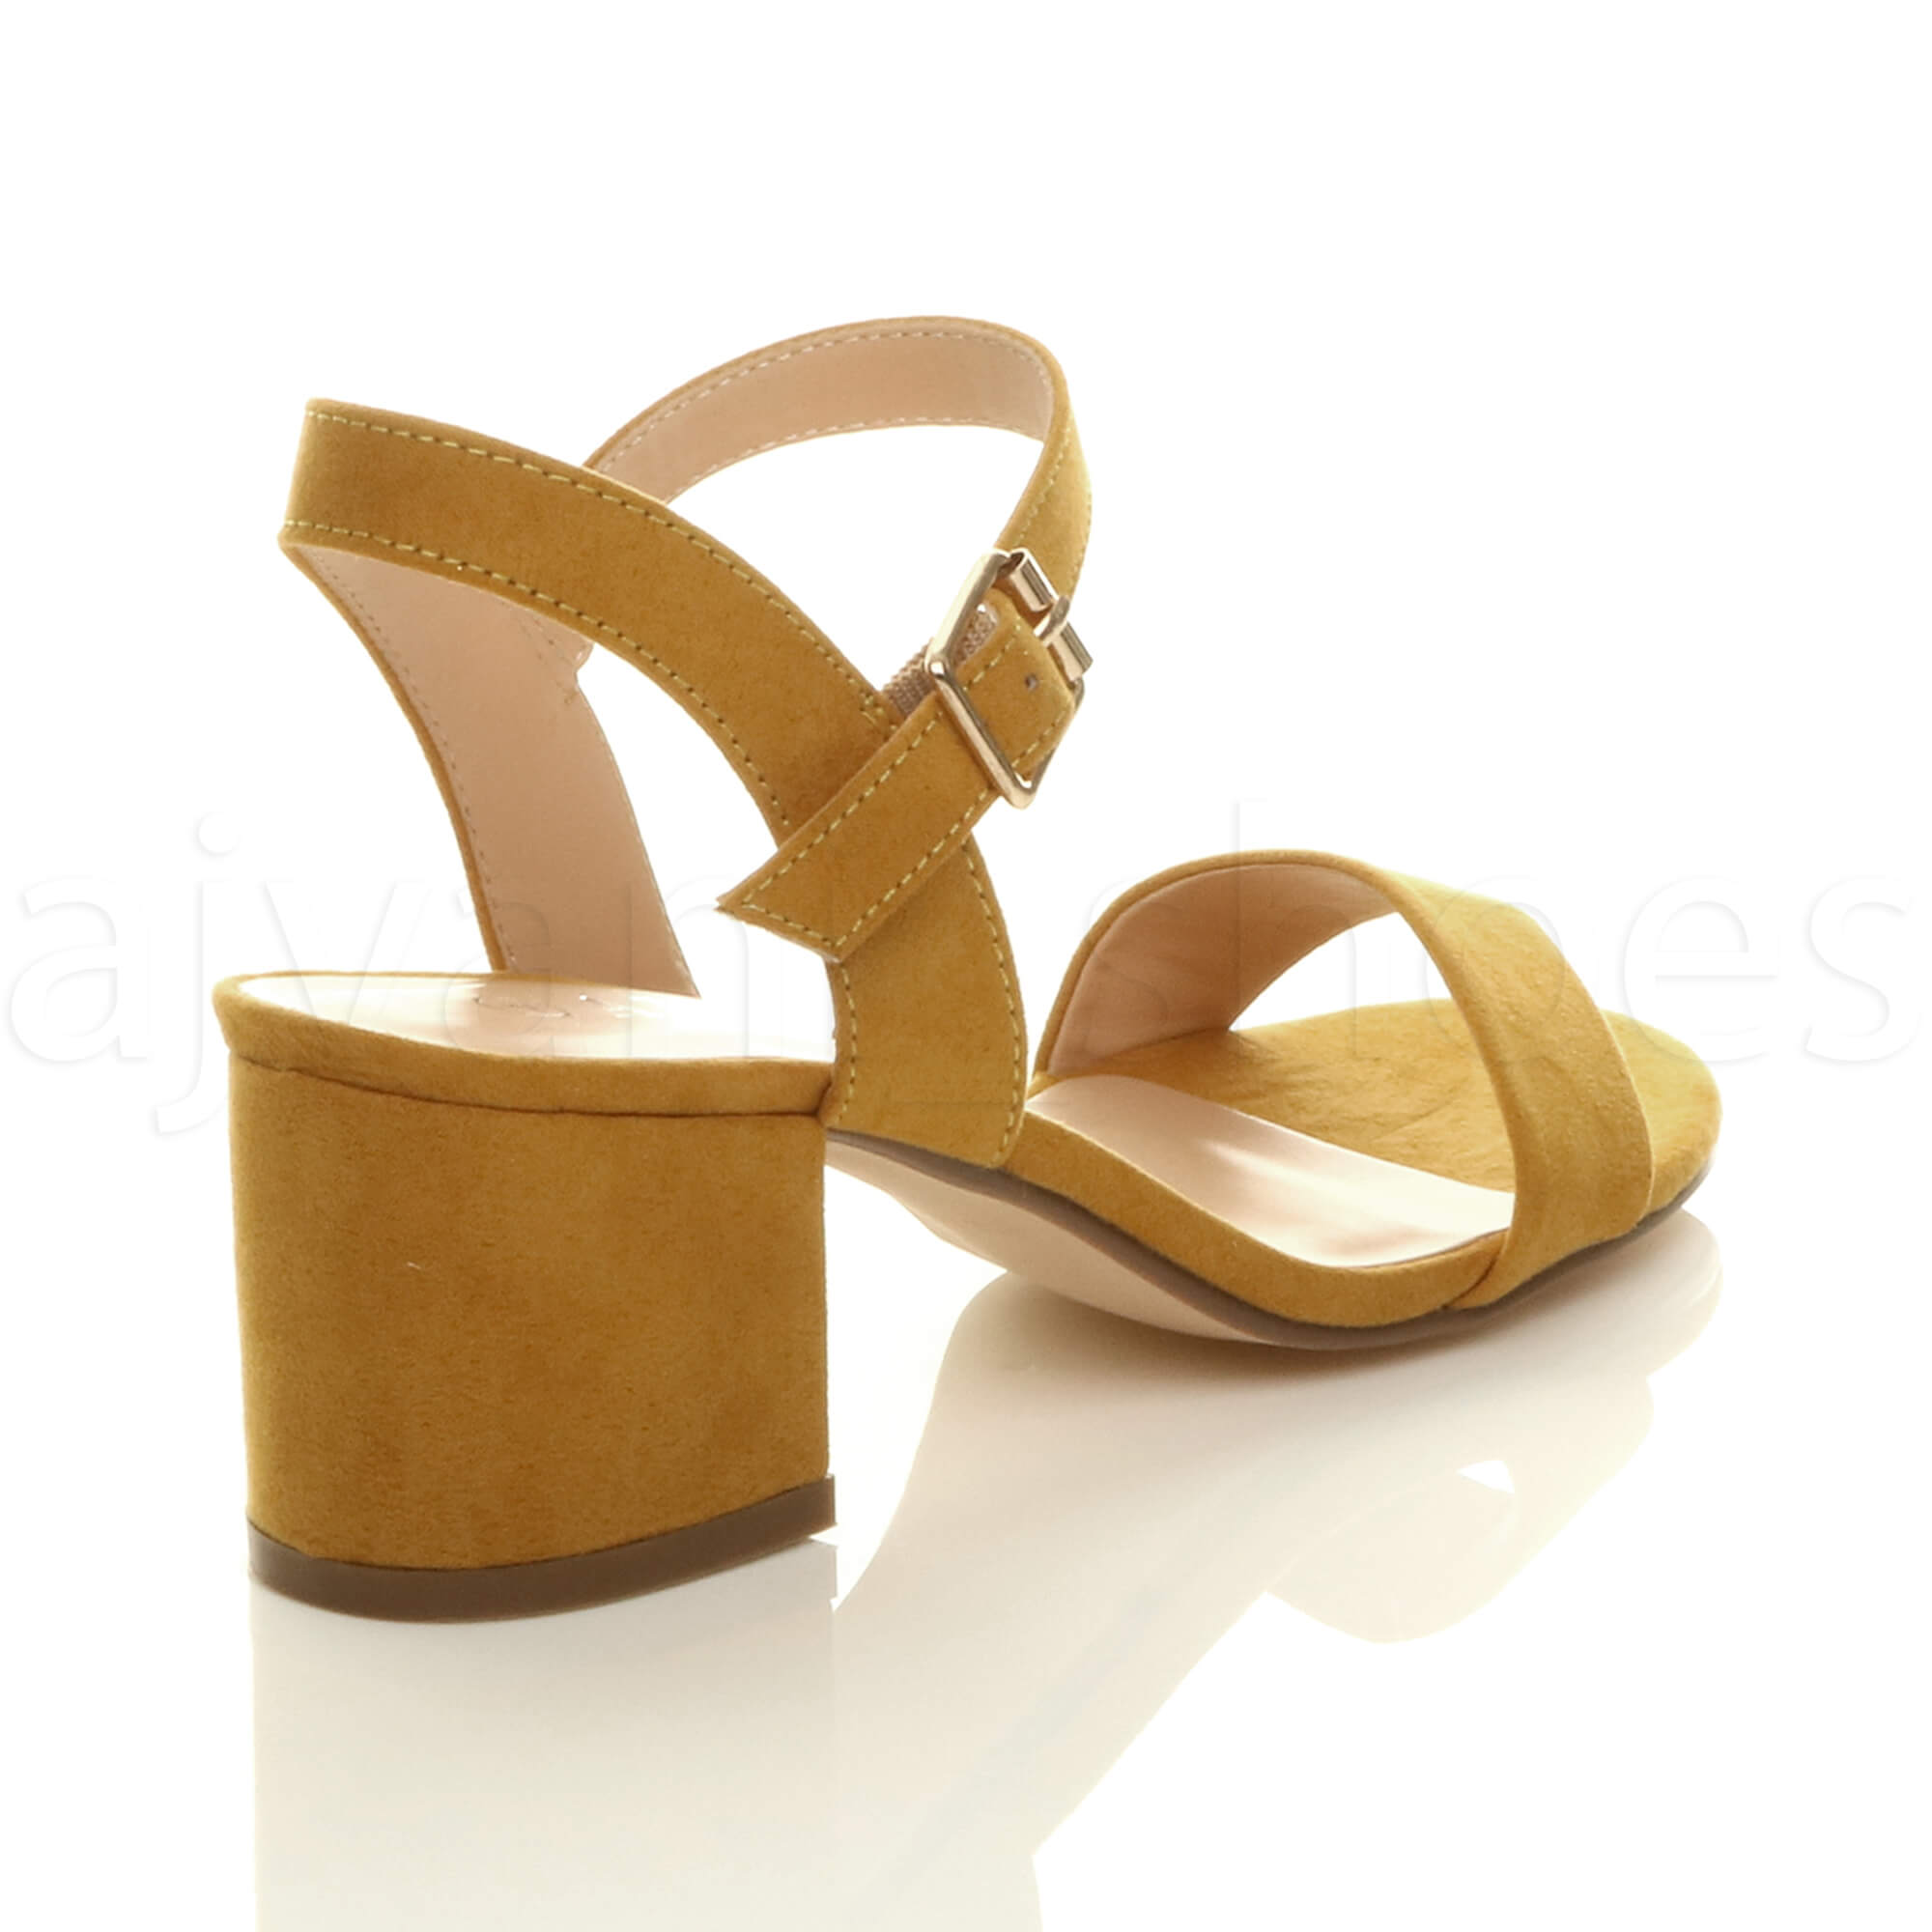 WOMENS-LADIES-MID-LOW-BLOCK-HEEL-PEEP-TOE-ANKLE-STRAP-STRAPPY-PARTY-SANDALS-SIZE thumbnail 77